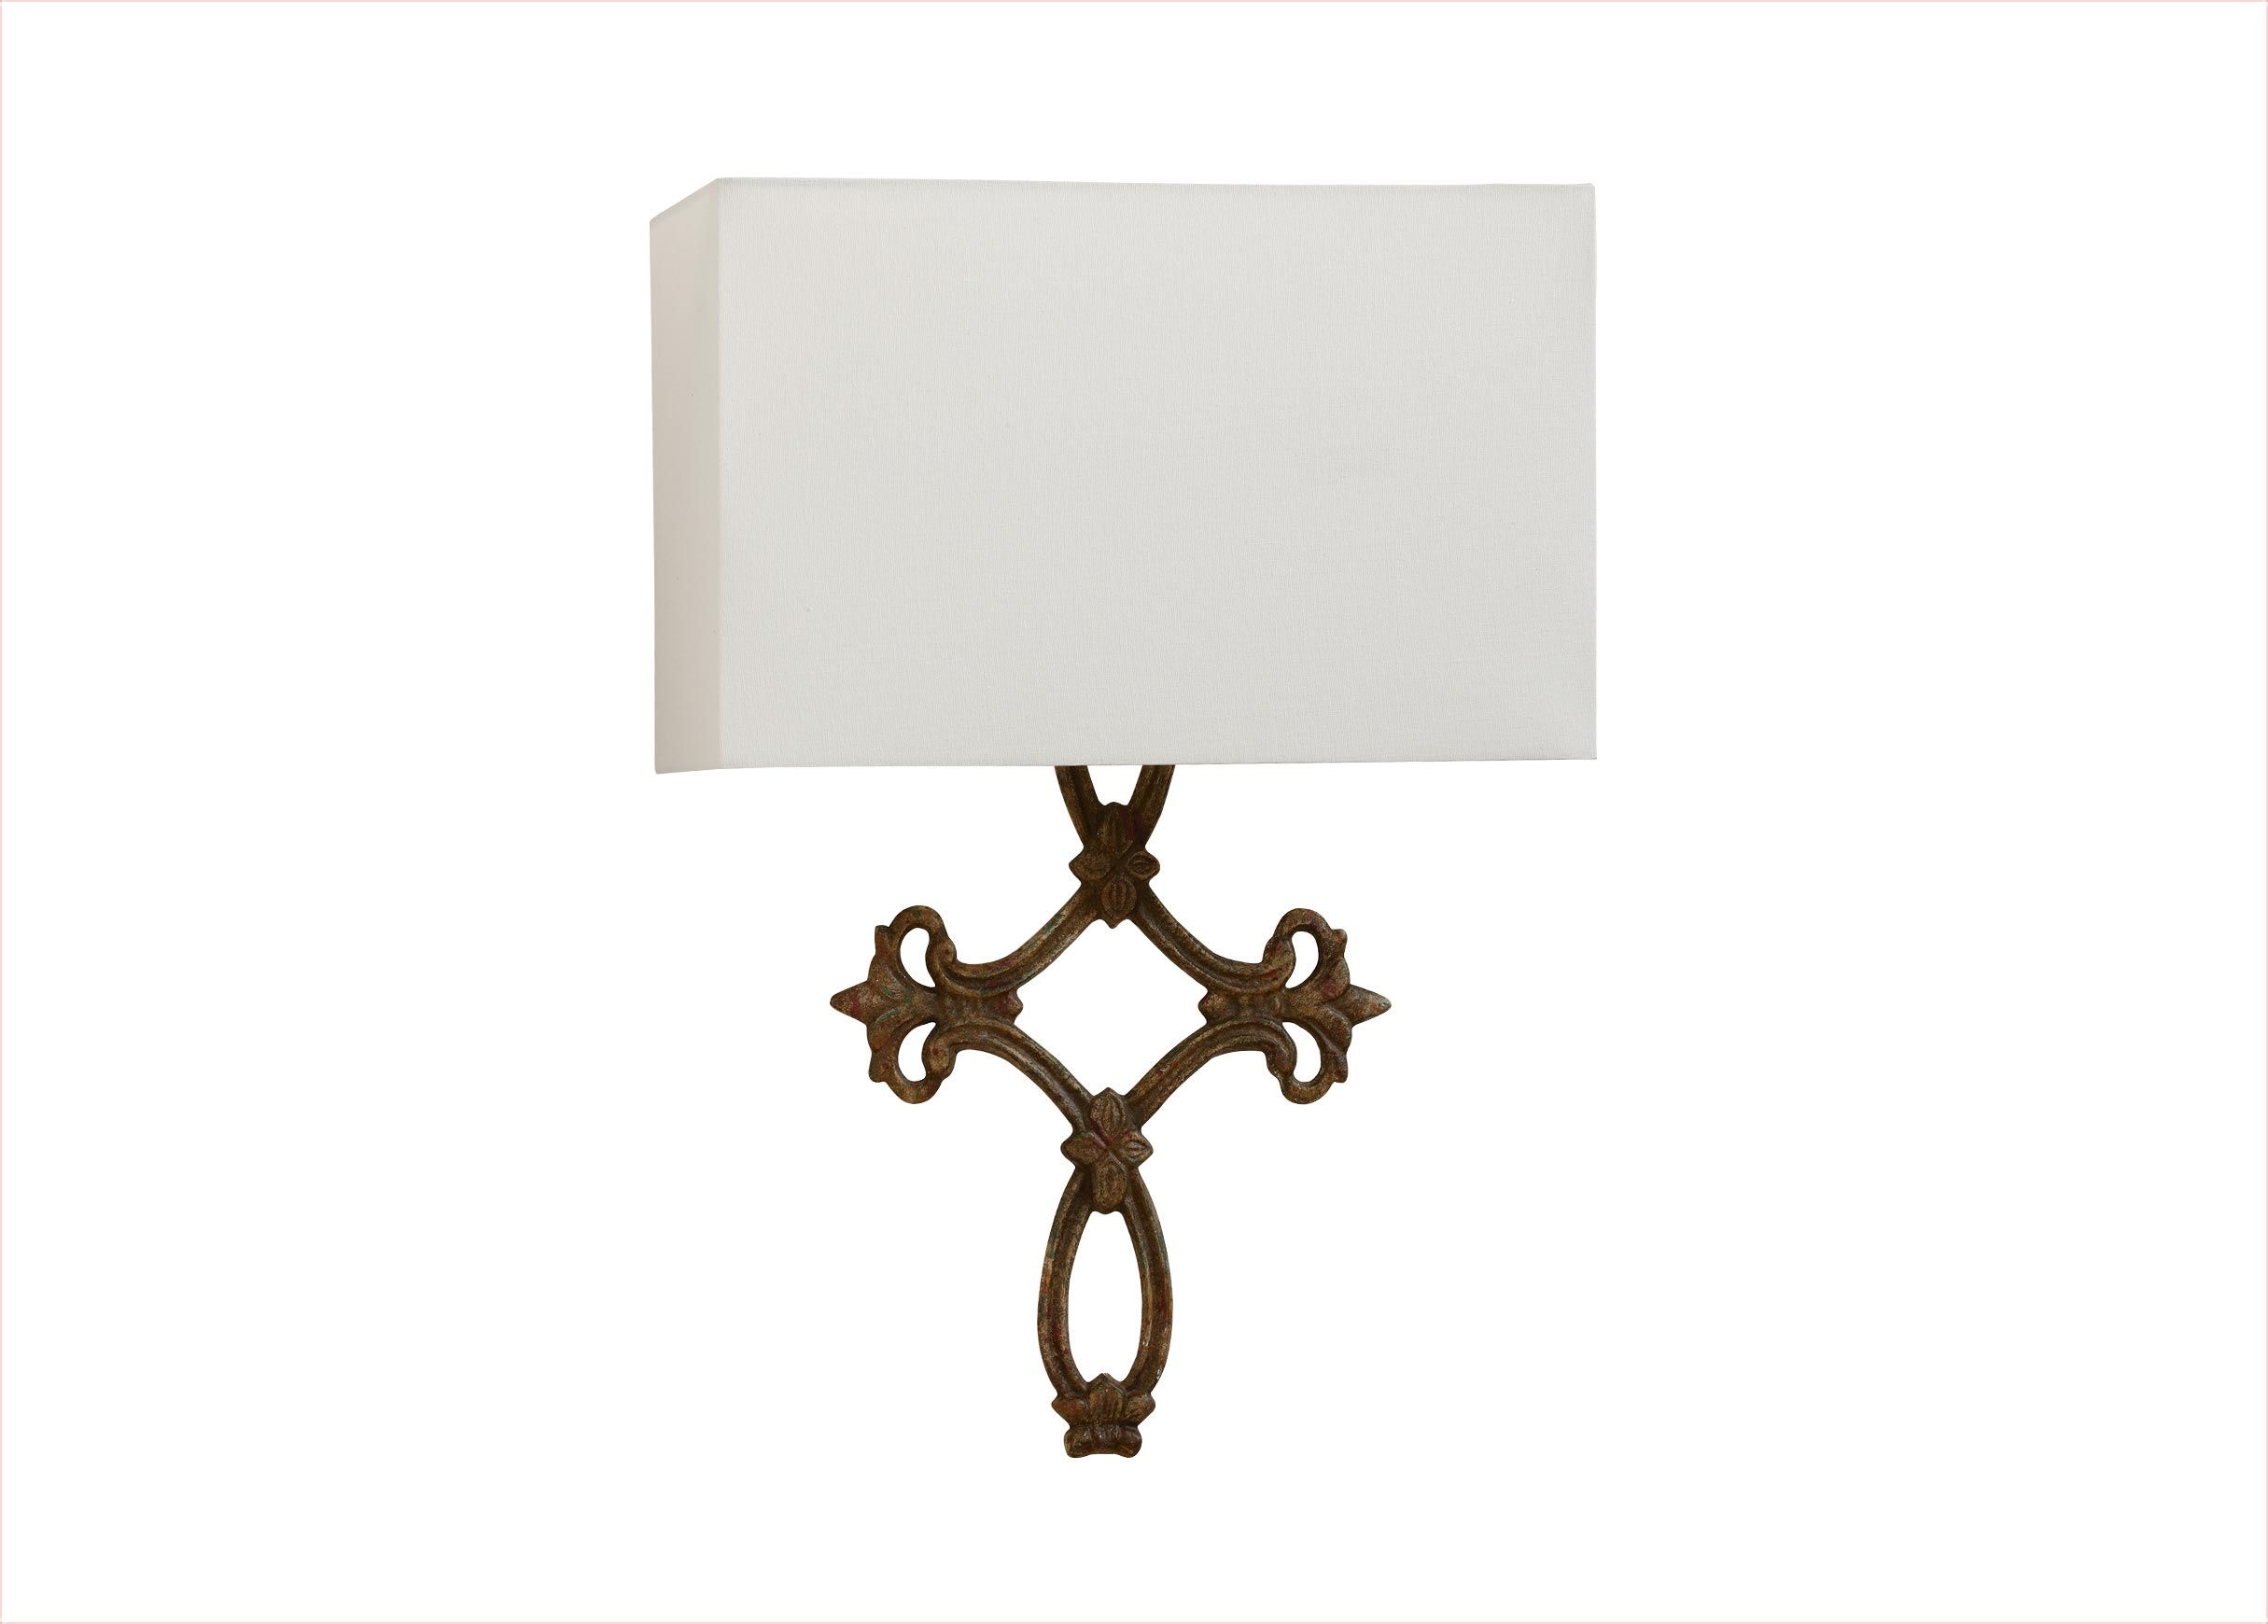 lighting finish light inch wide bath hudson cfm image valley glass vanity bathroom sn in shown sconce magnifying satin capitol weston nickel item